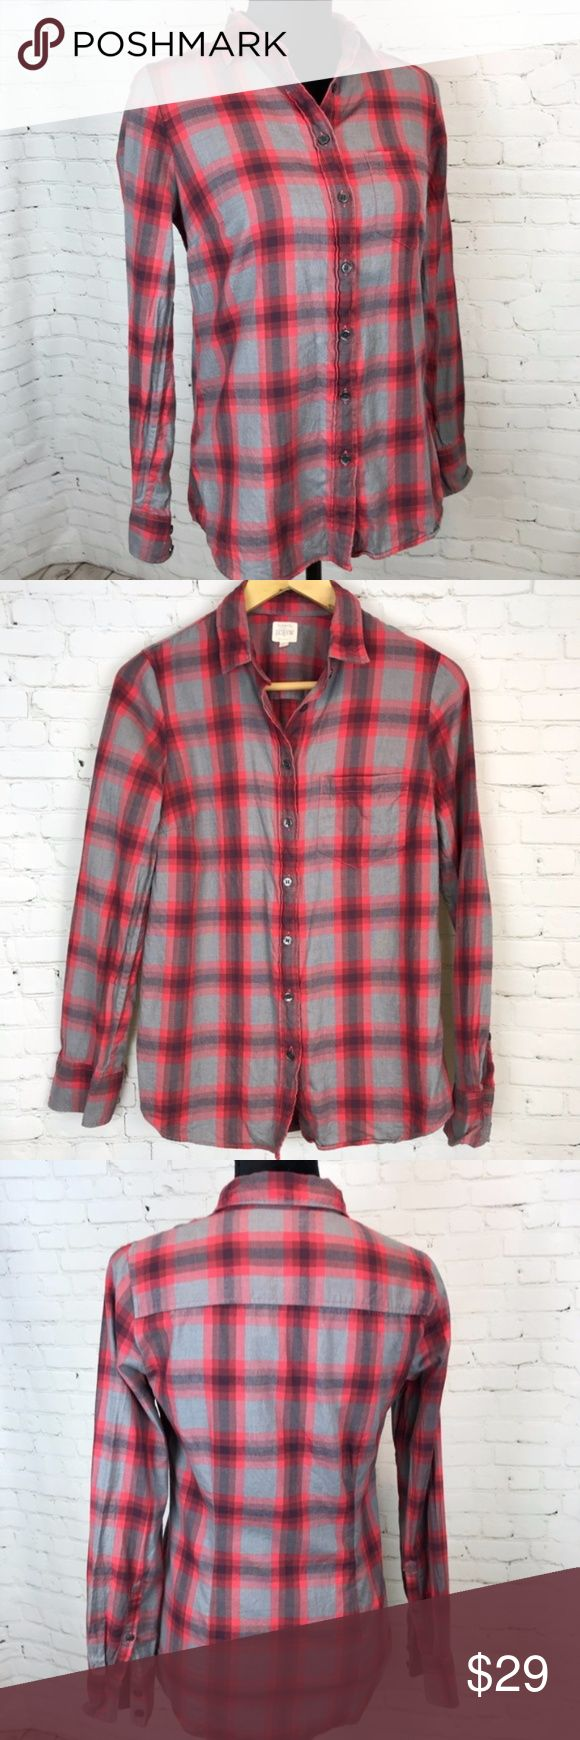 J. Crew Red & Gray Plaid Perfect Shirt 100% Cotton J. Crew Red and Gray Plaid 100% Cotton The Perfect Shirt Nothing is more classic than a button down shirt and J. Crew make some of the best on the market. This classic plaid shirt looks great with jeans or thrown over a vintage t-shirt. Wear the sleeves opened or cuffed, pair it with a high waisted skirt for an updated preppy look. Preowned from a smoke free home, in excellent used condition. Check out the rest of my closet to create your…